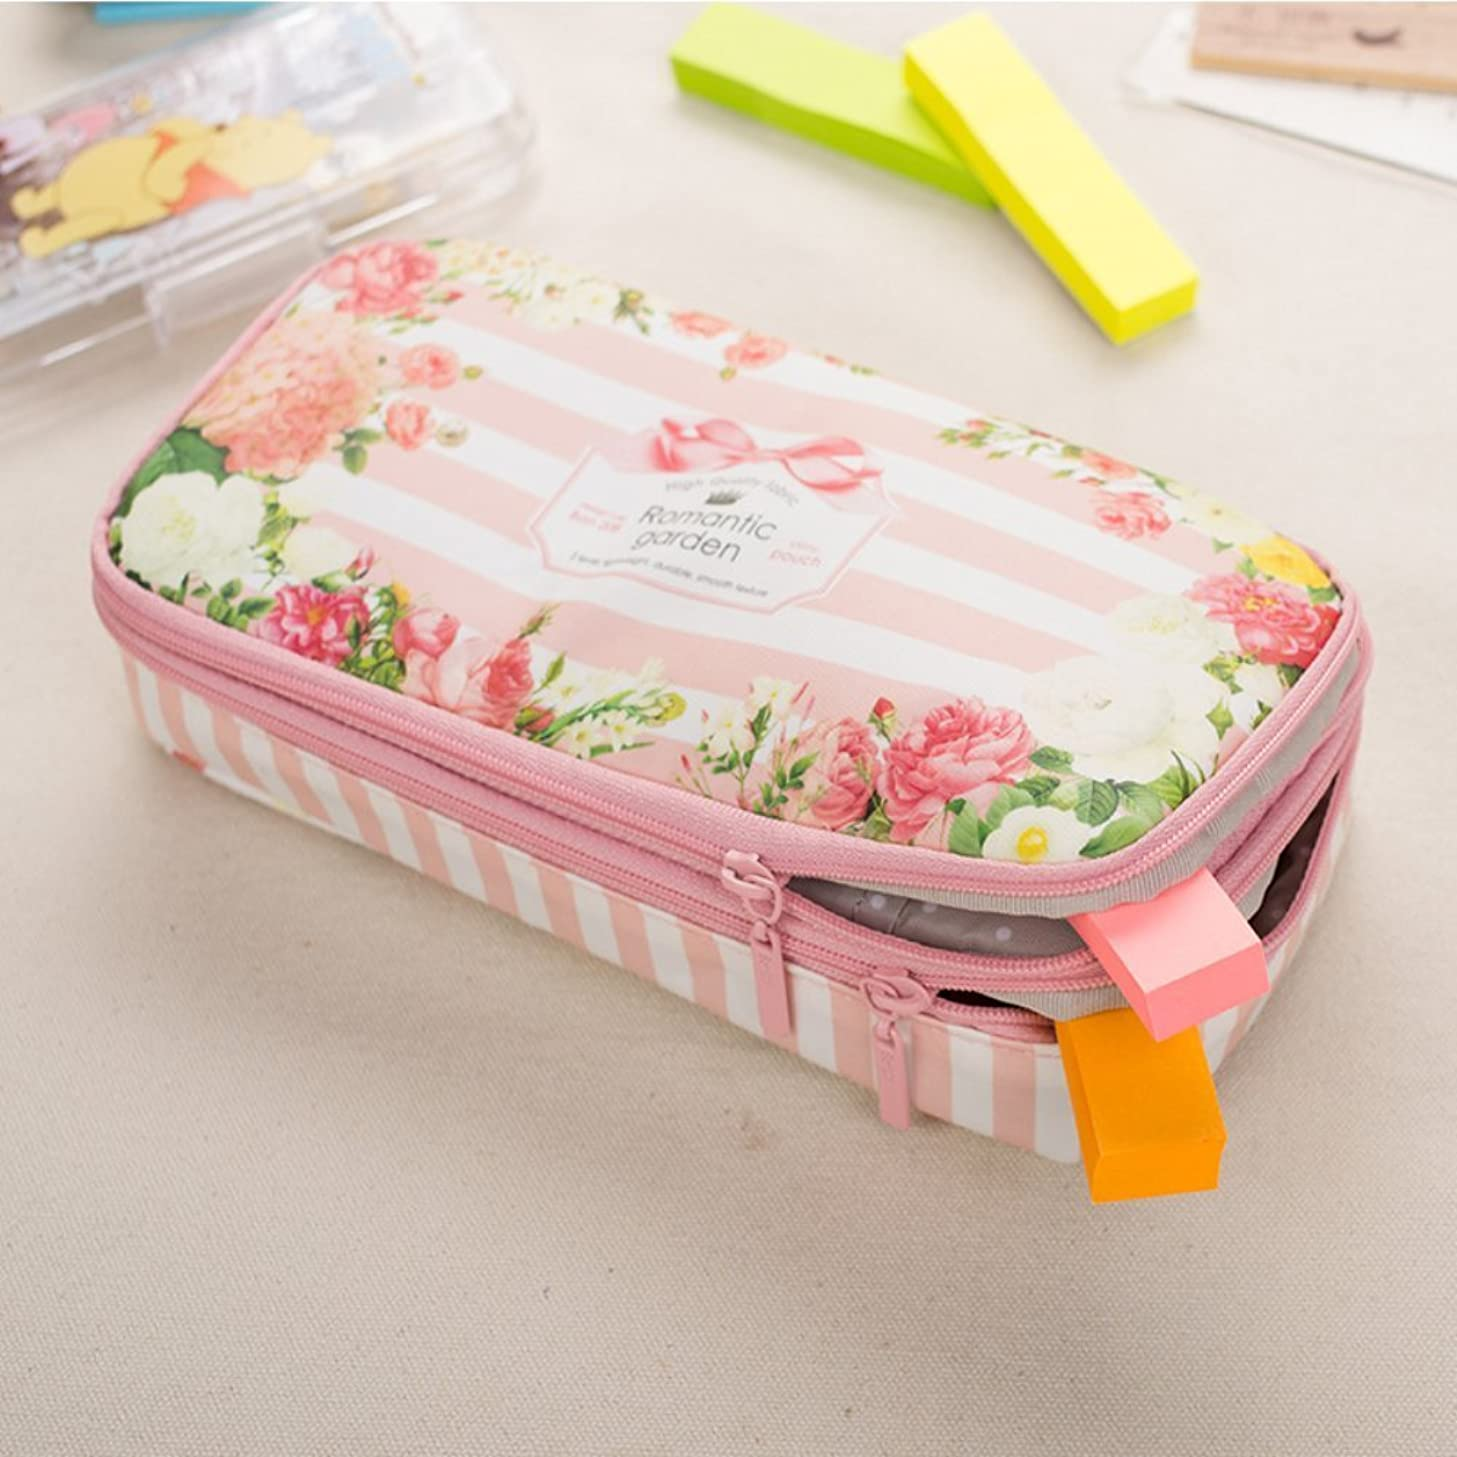 Waterproof Super Large Capacity Romantic Floral Garden Two Layers Double Zipper Pencil Case Pen Bag Holder Stationery Storage Pouch School Supplies for Girls (Pink)